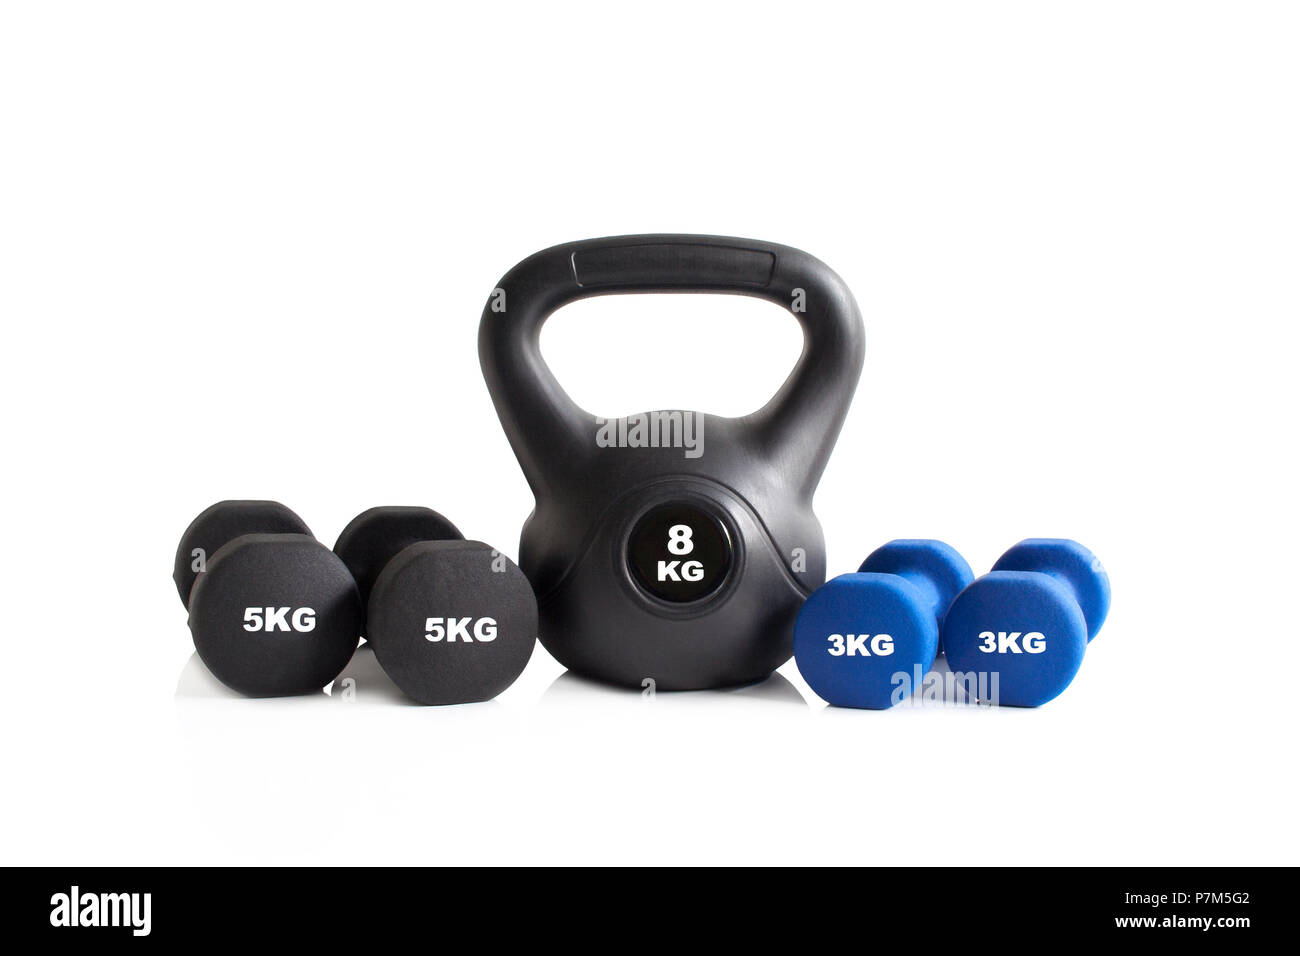 Blue and black gym exercise equipment isolated on a white background. - Stock Image